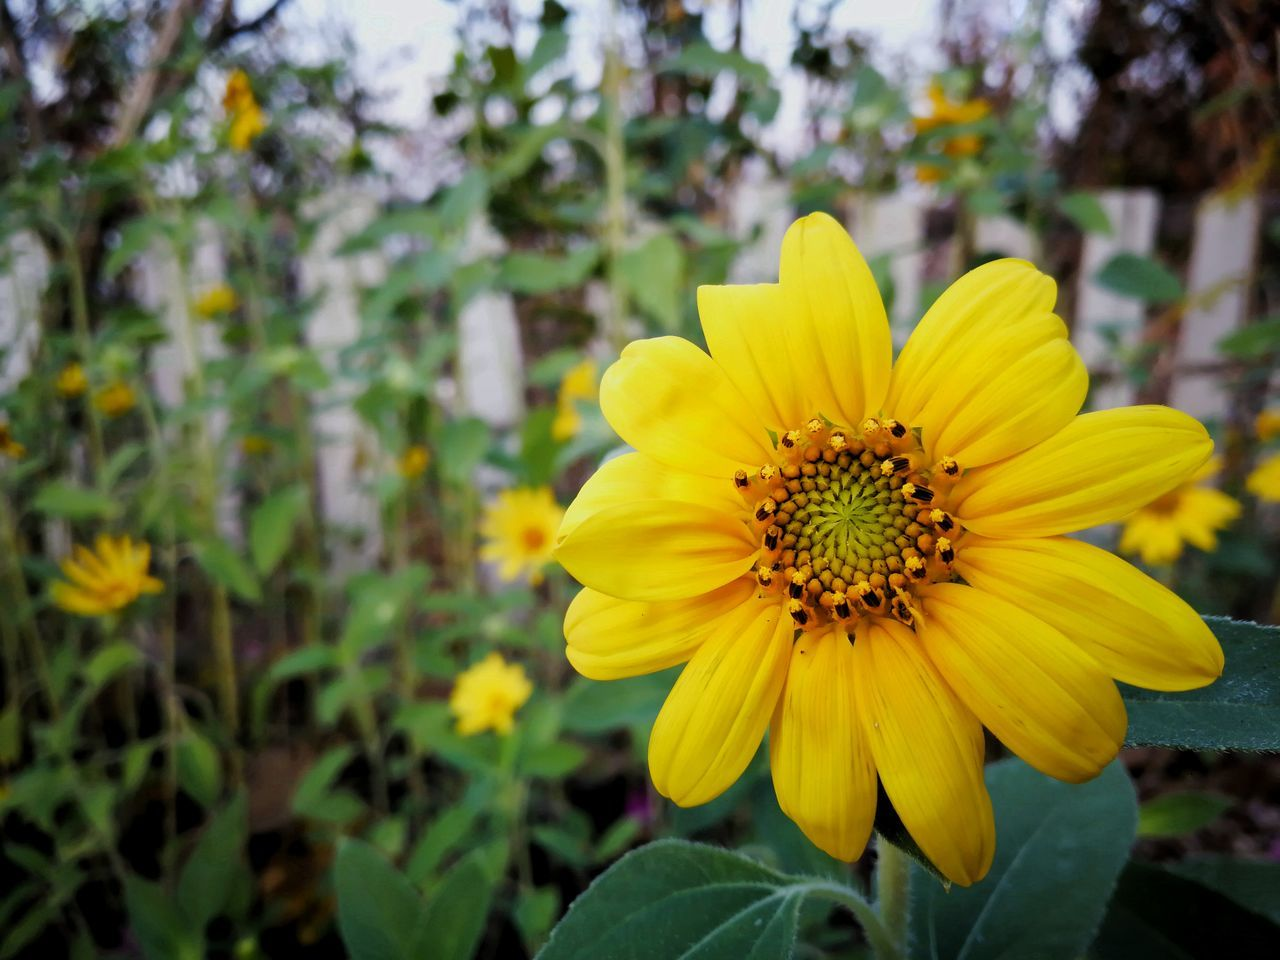 flower, yellow, petal, fragility, beauty in nature, nature, growth, flower head, plant, freshness, blooming, outdoors, focus on foreground, day, no people, close-up, leaf, springtime